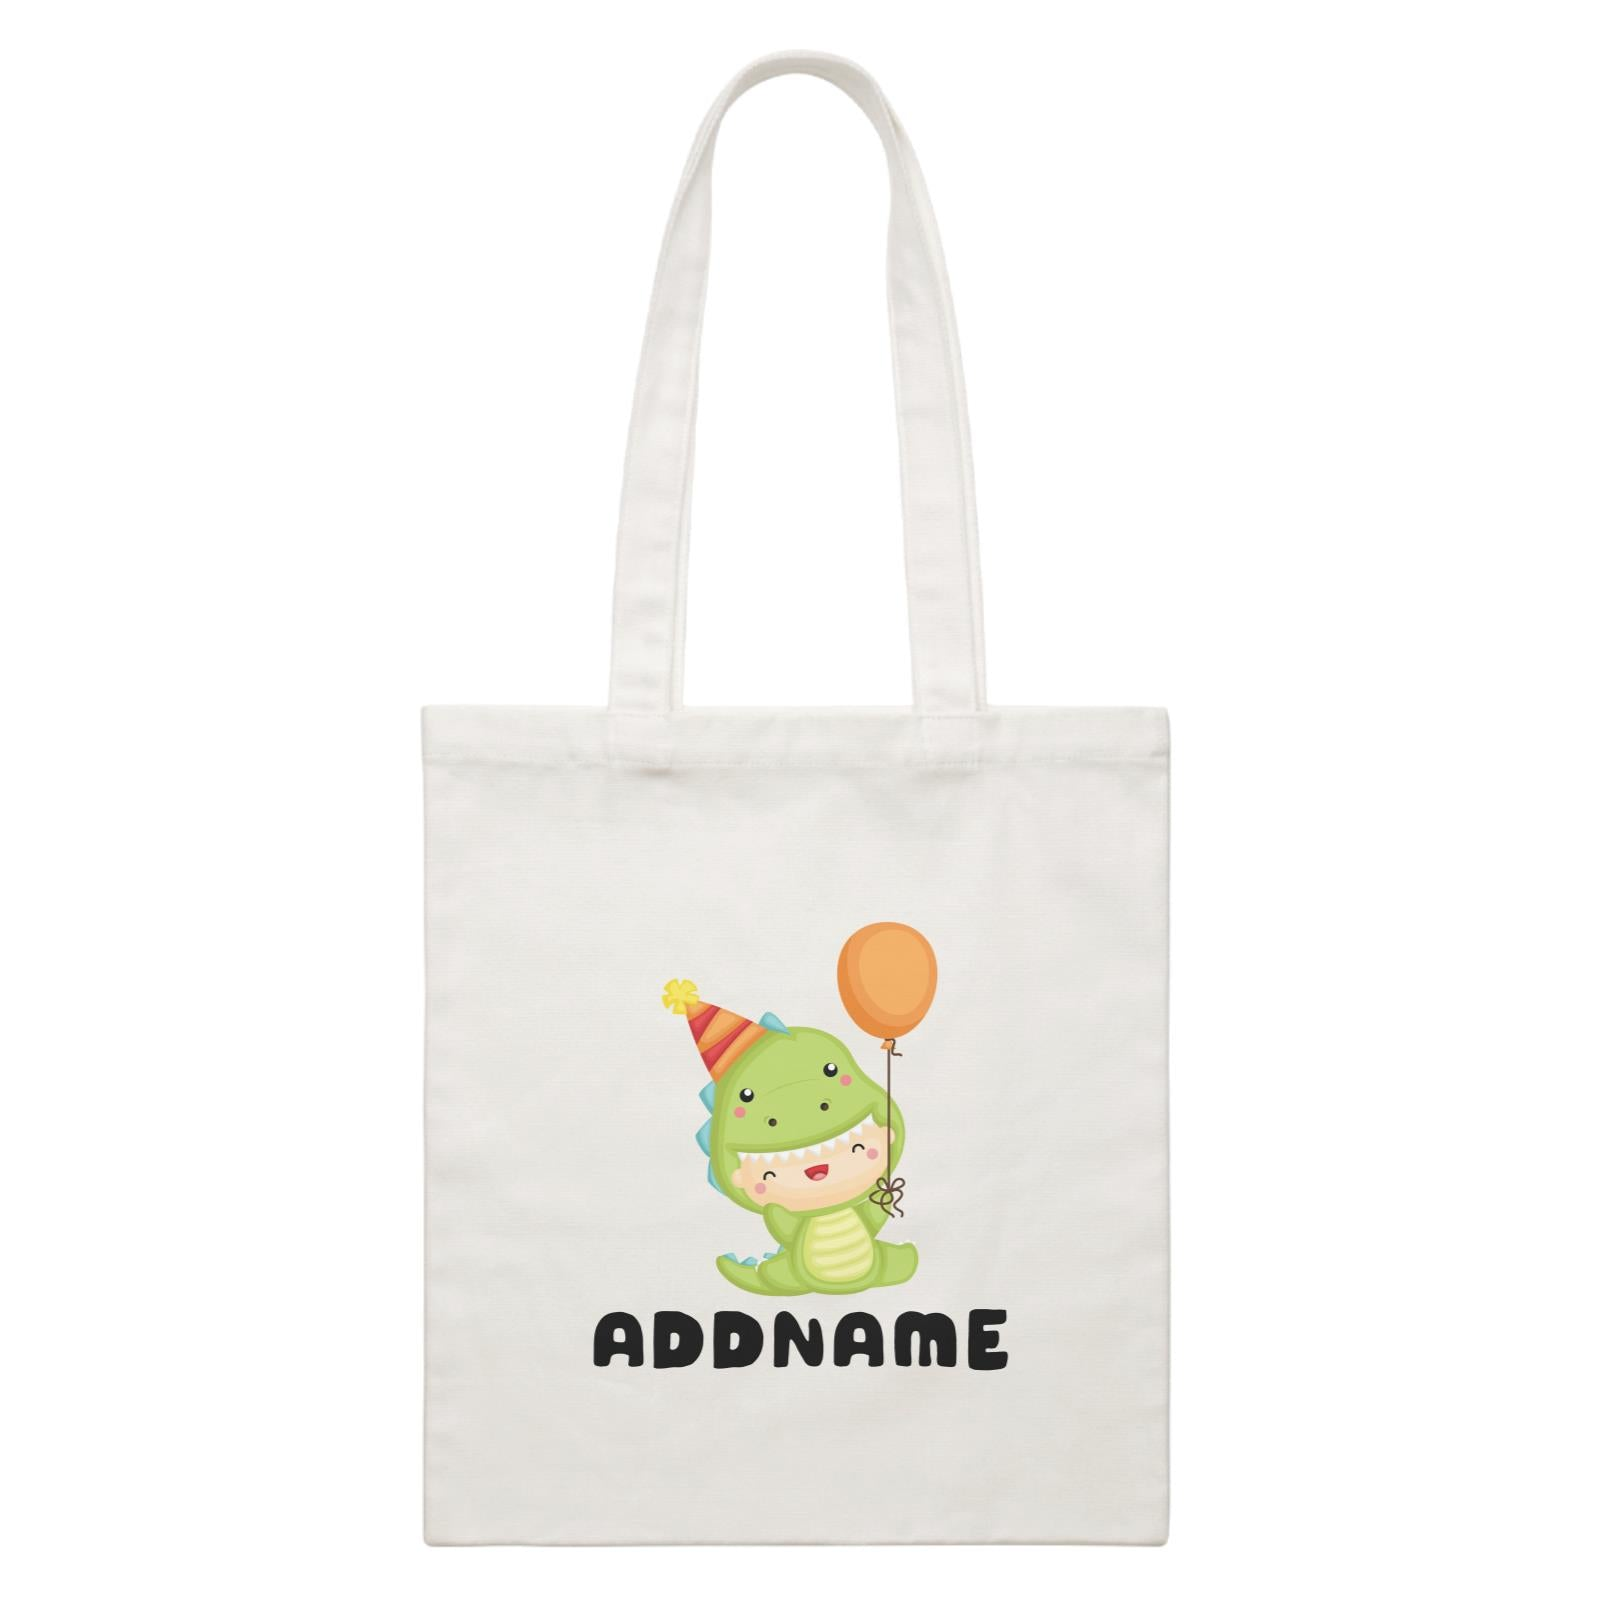 Birthday Dinosaur Happy Baby Wearing Dinosaur Suit And Party Hat Addname White Canvas Bag